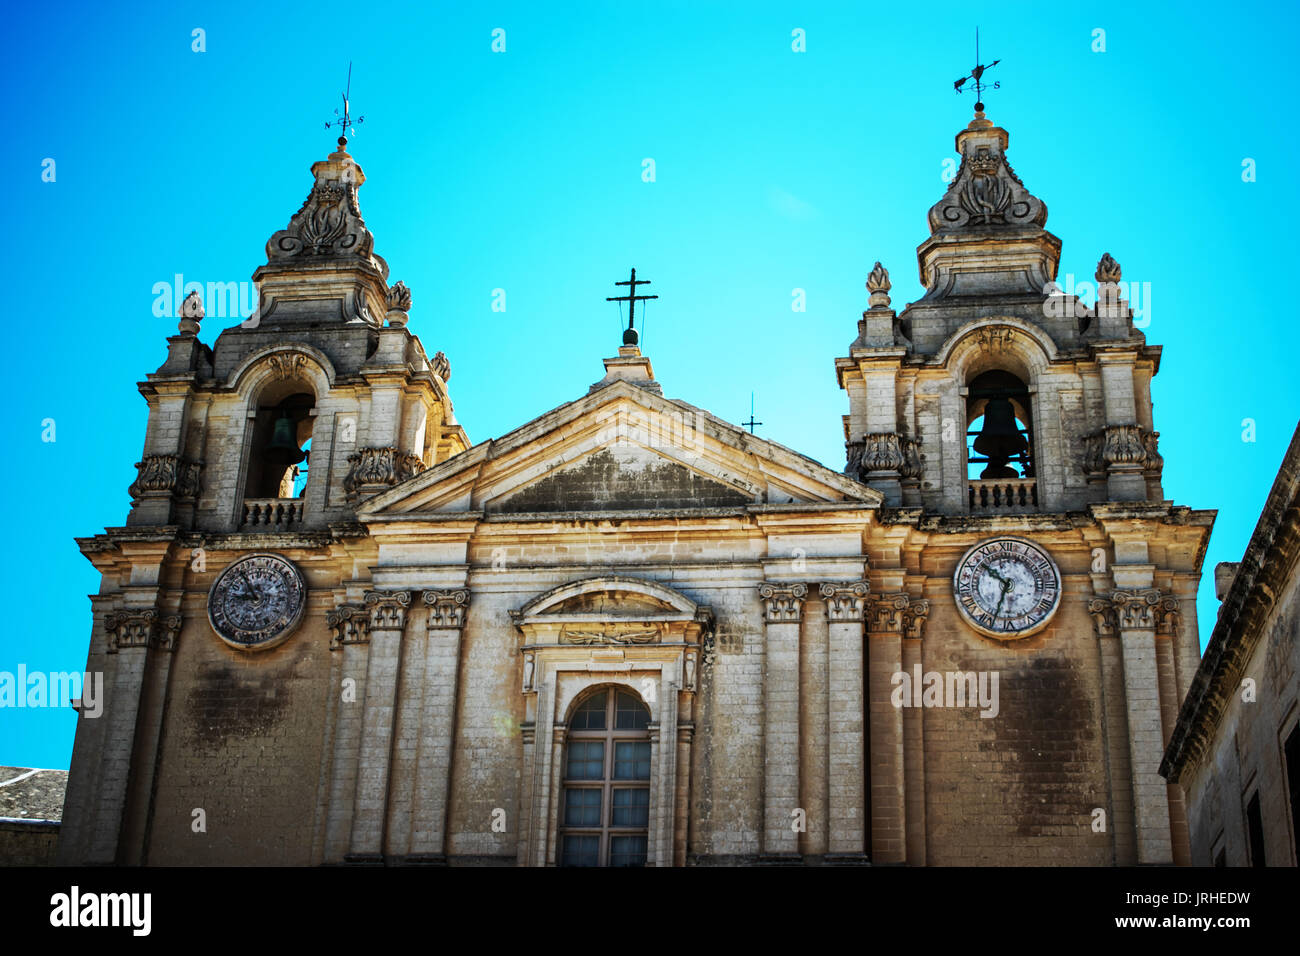 St. Paul's Cathedral is a Roman Catholic cathedral in Mdina, Malta, dedicated to St. Paul the Apostle. - Stock Image